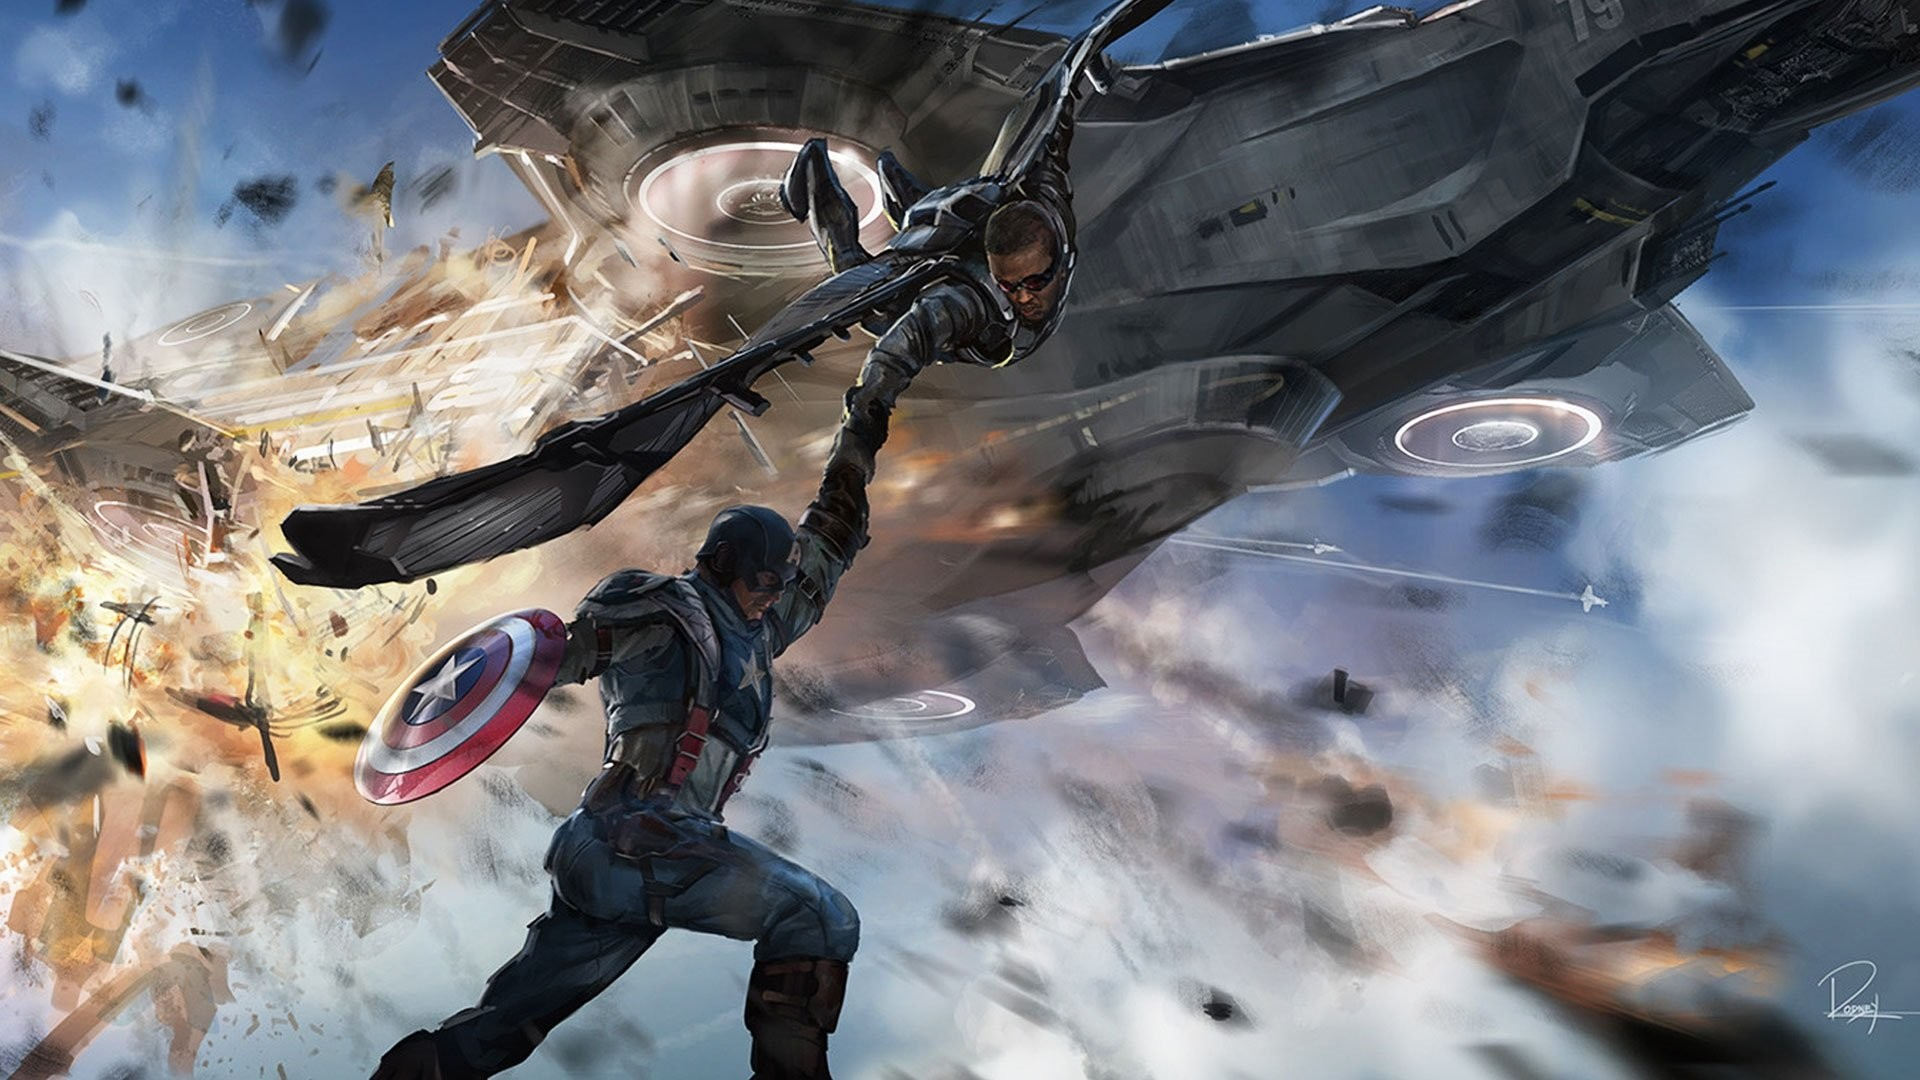 1920x1080 CAPTAIN AMERICA WINTER SOLDIER action adventure sci-fi superhero marvel  wallpaper |  | 471123 | WallpaperUP